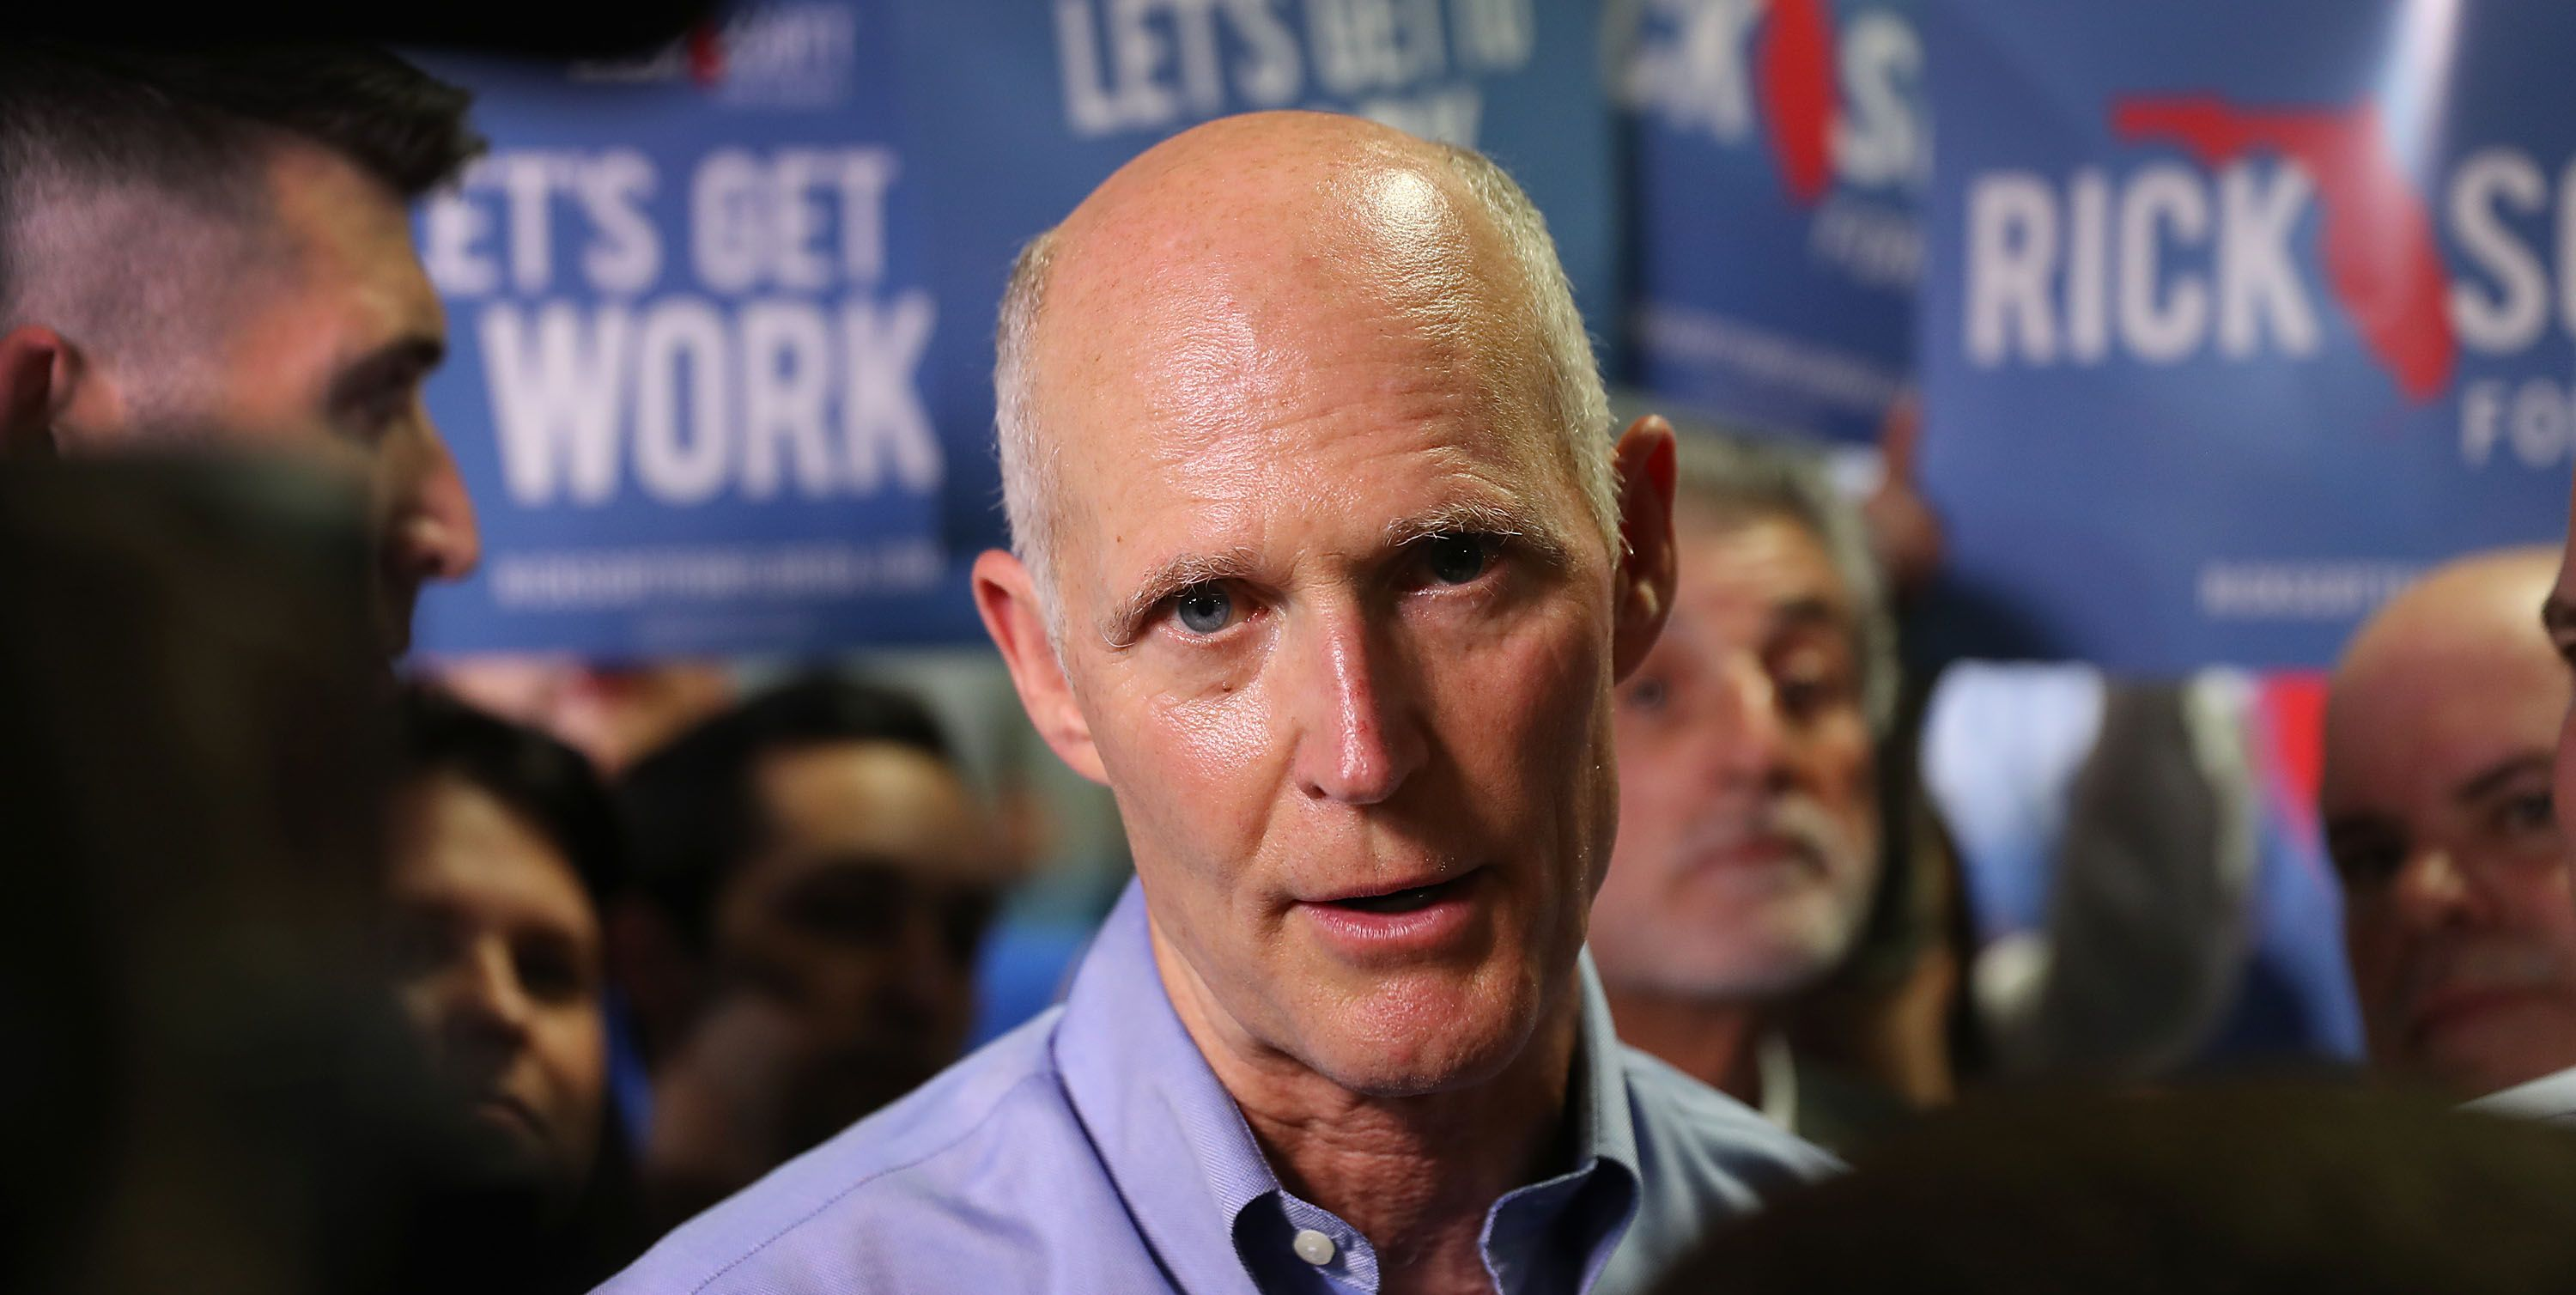 Maybe Florida Should Just Sit the Next Few Elections Out